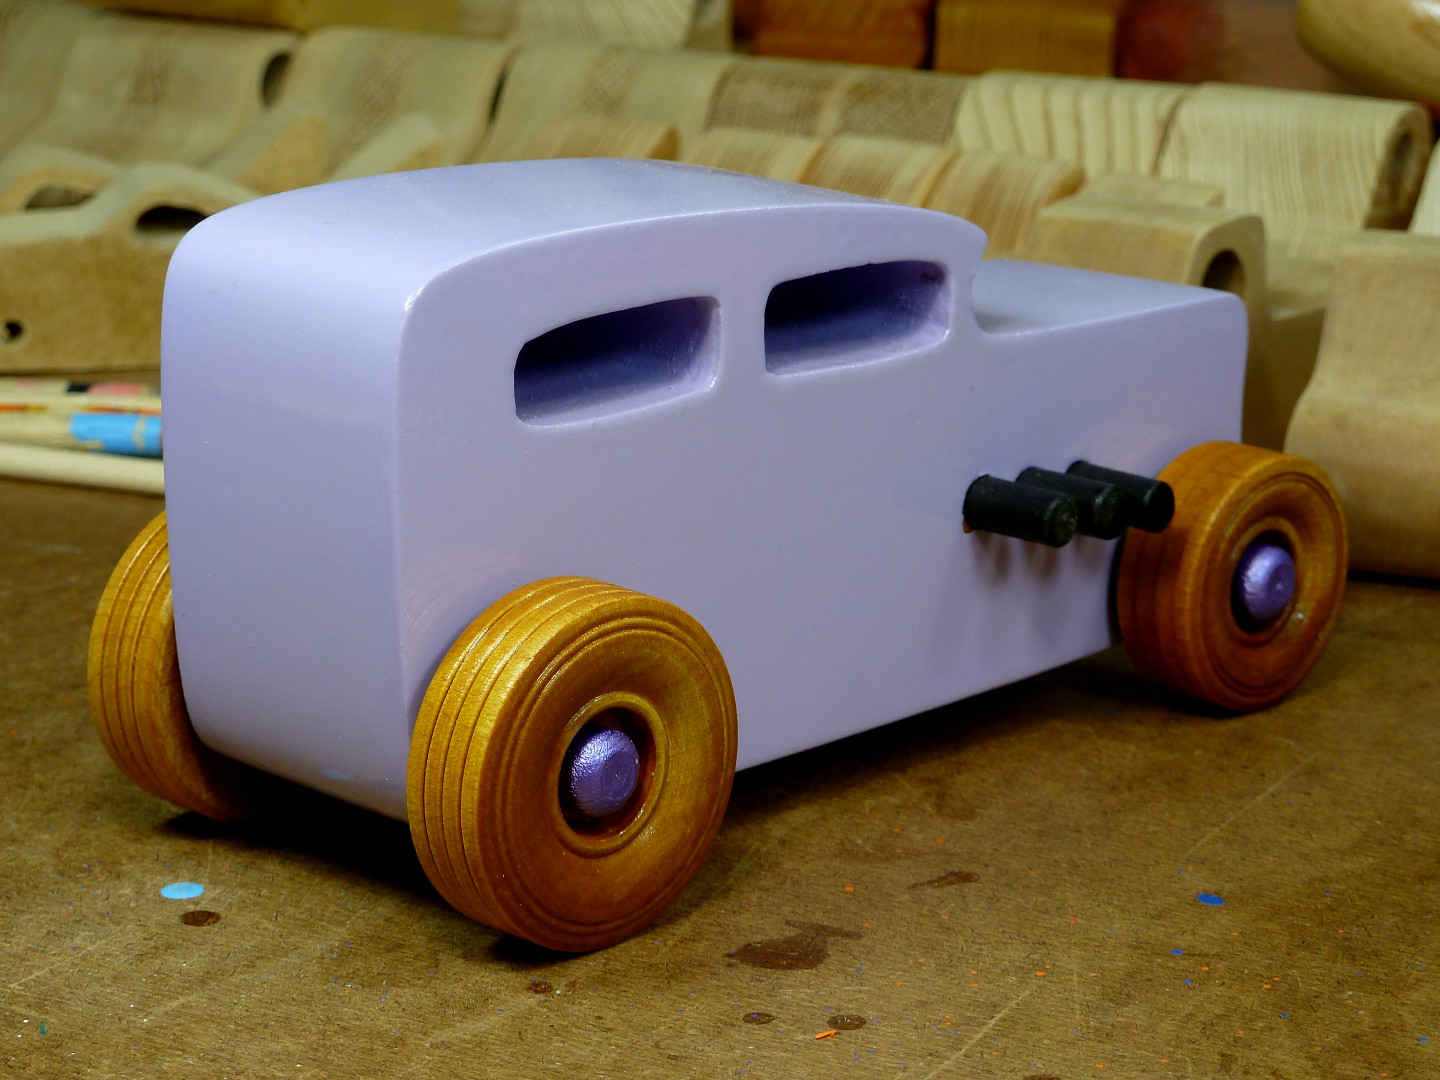 20170522-185923 Wooden Toy Car - Hot Rod Freaky Ford - 32 Sedan - MDF - Lavender - Amber Shellac - Metallic Purple 06.jpg